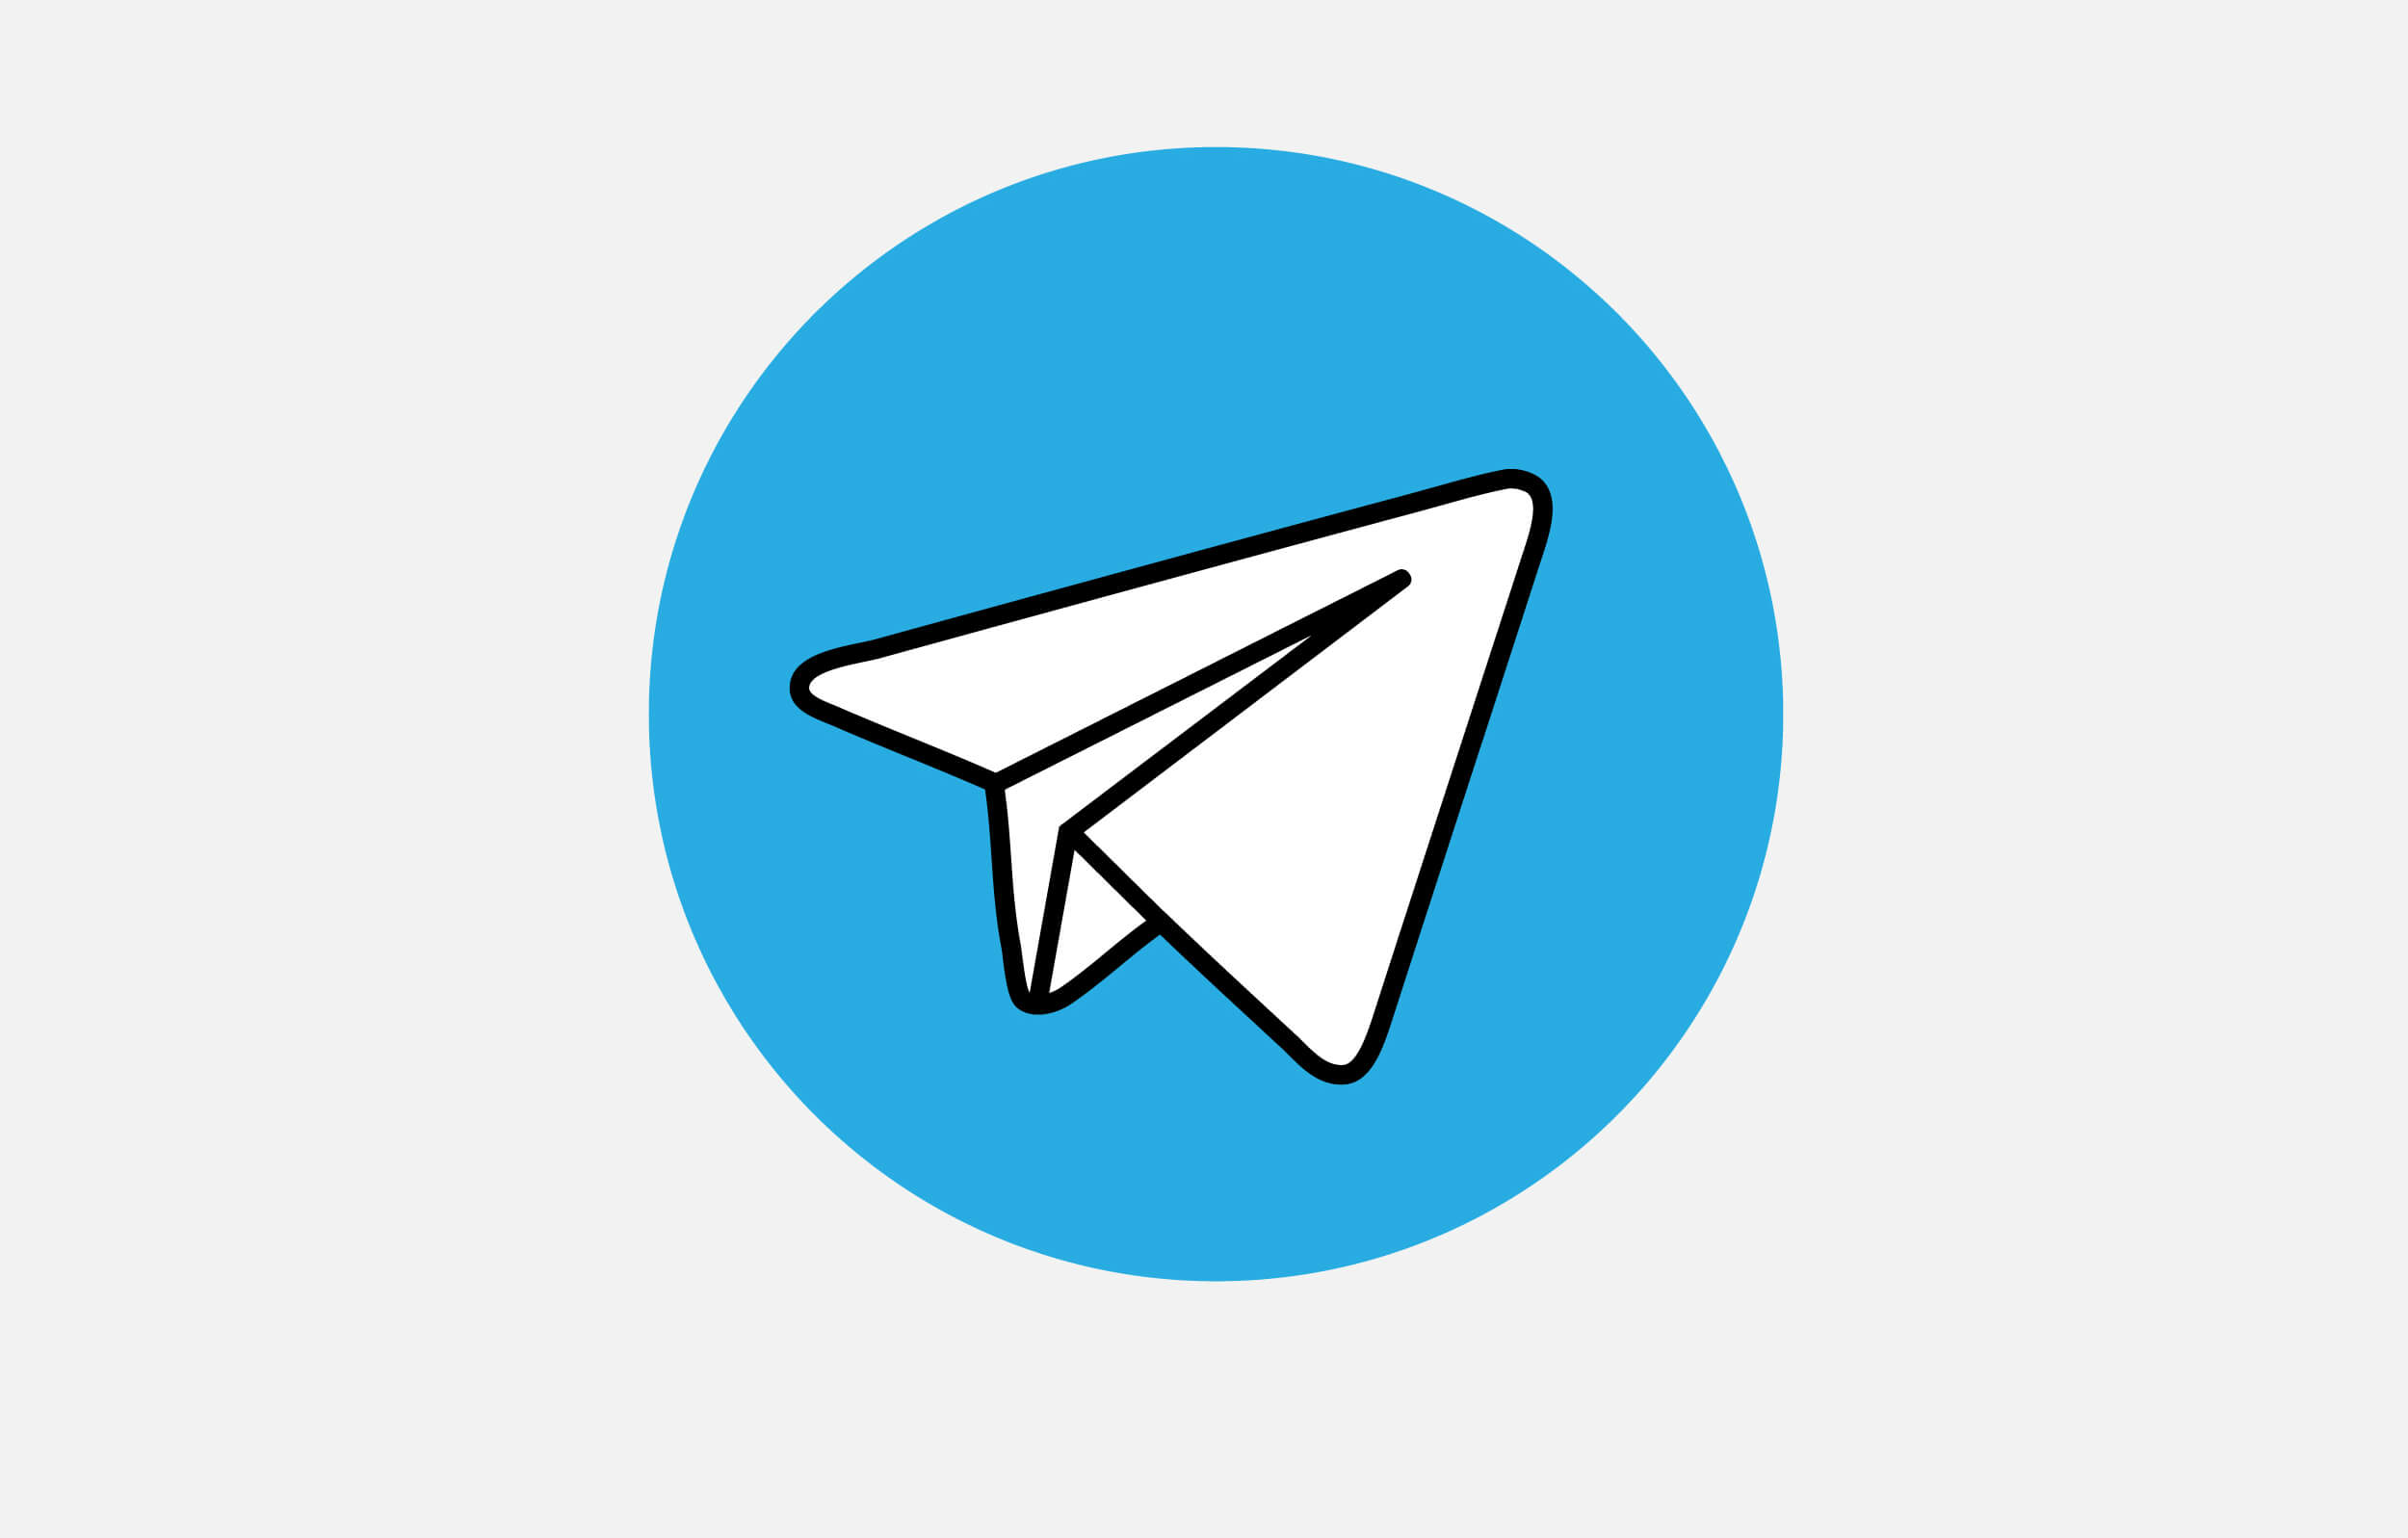 Should I buy followers on my Telegram account?